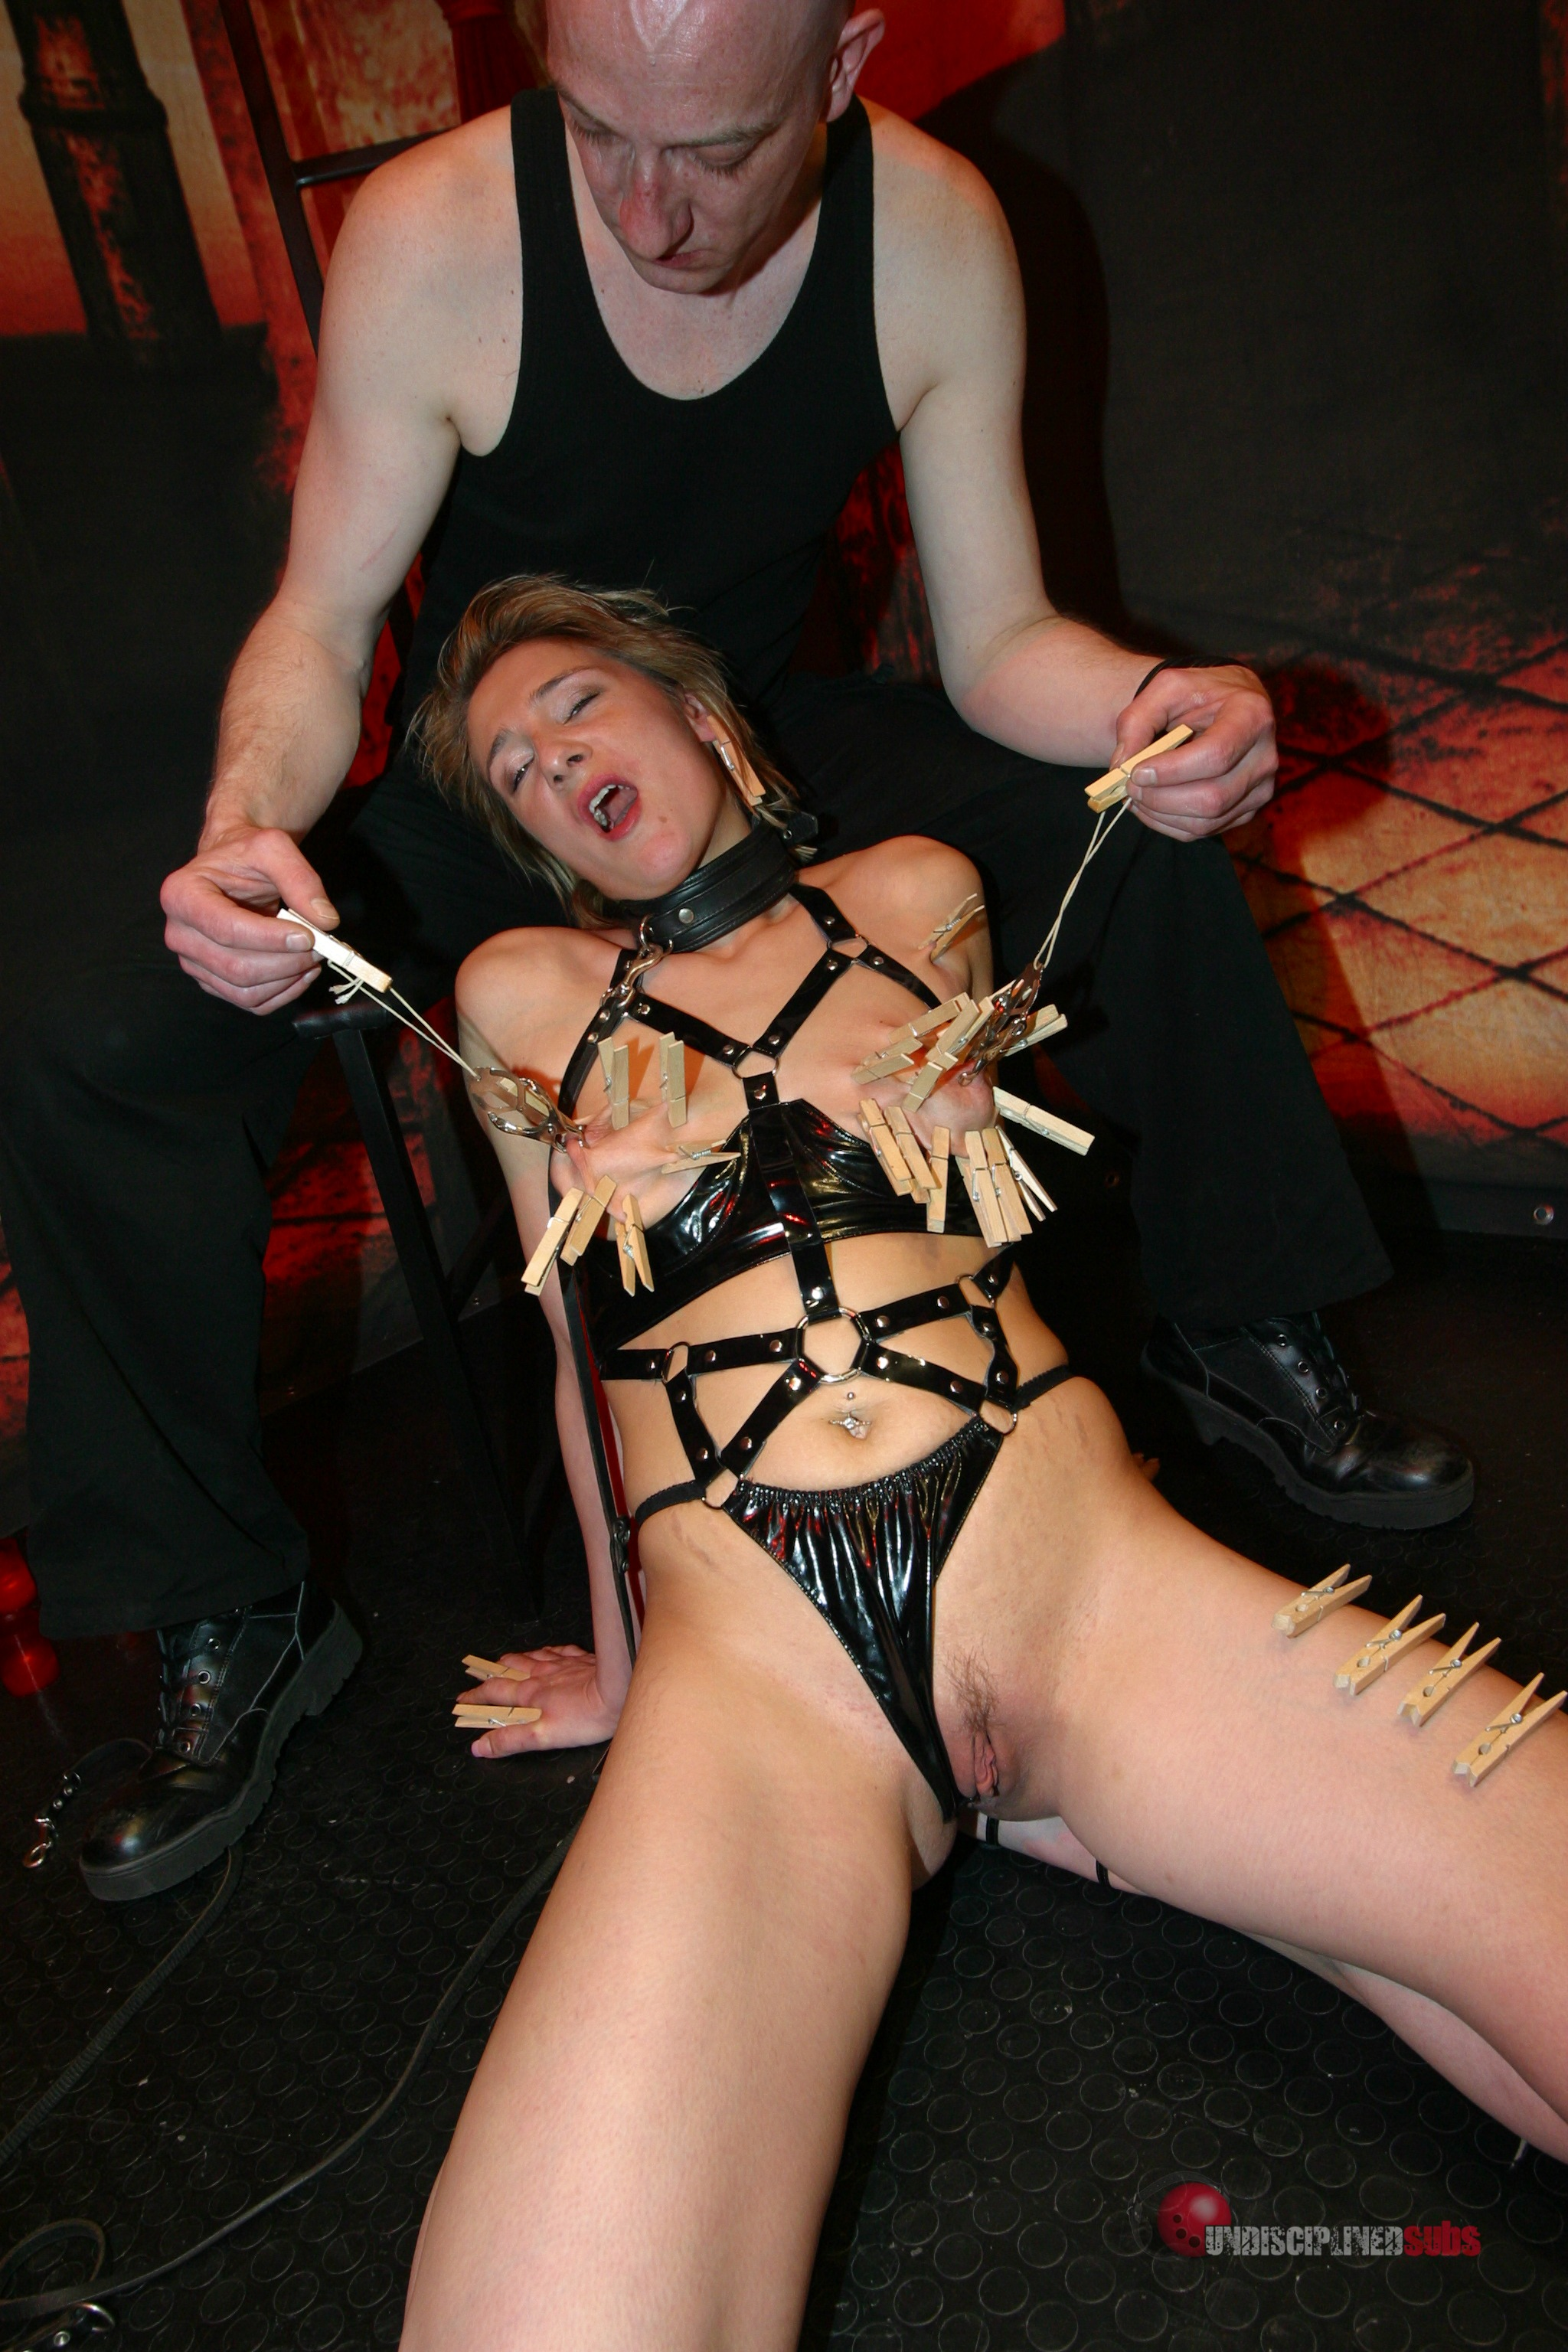 Opinion Bdsm slave outfit rather